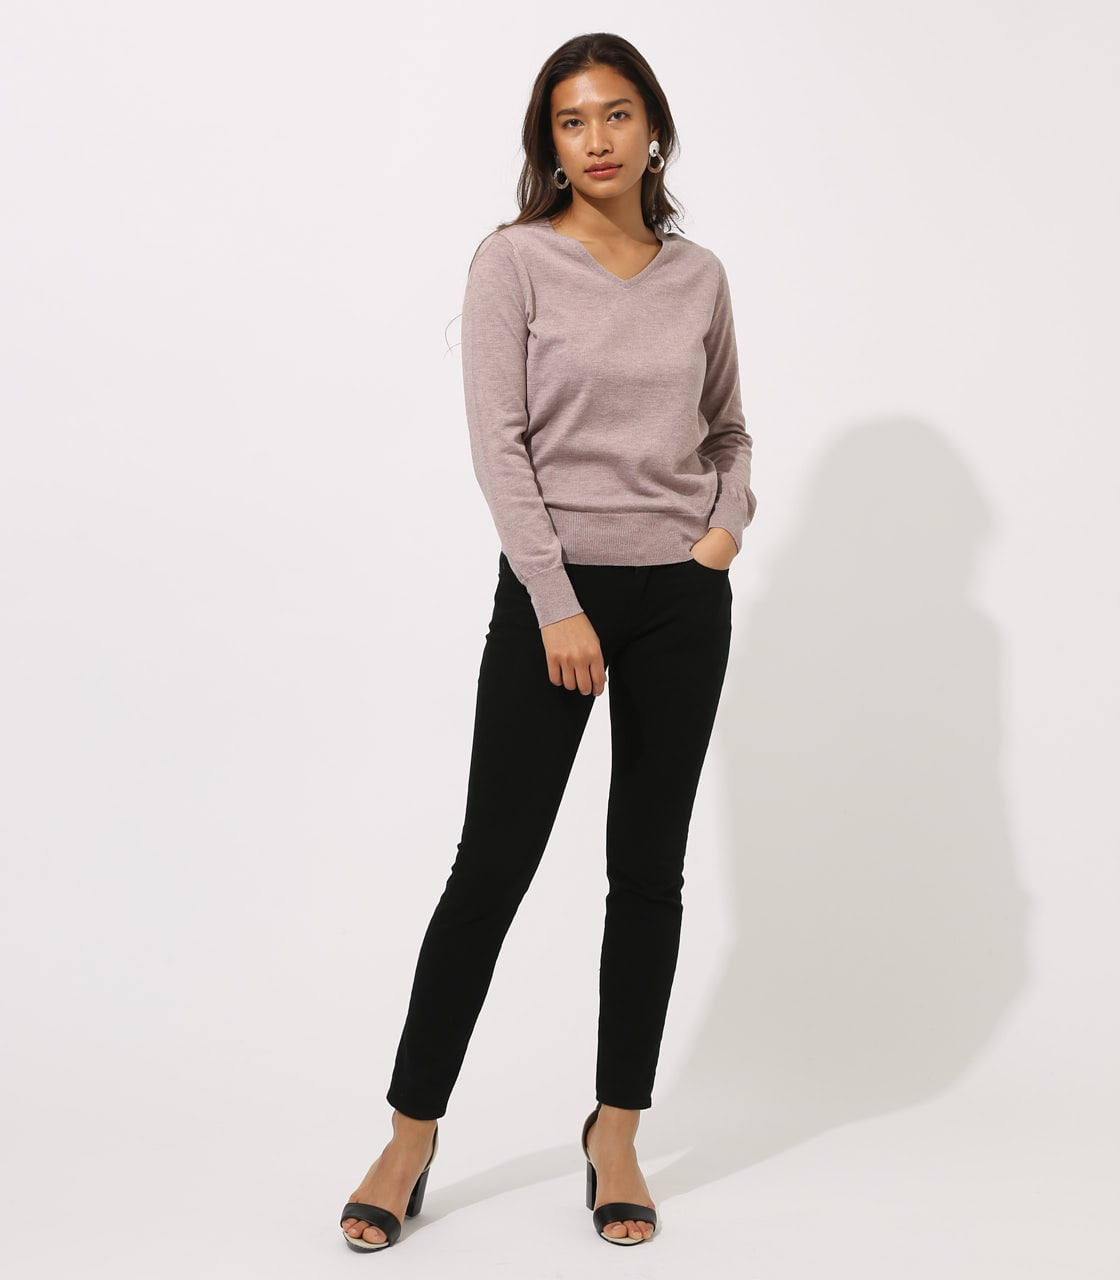 BASIC VNECK KNIT TOPS 詳細画像 BEG 4